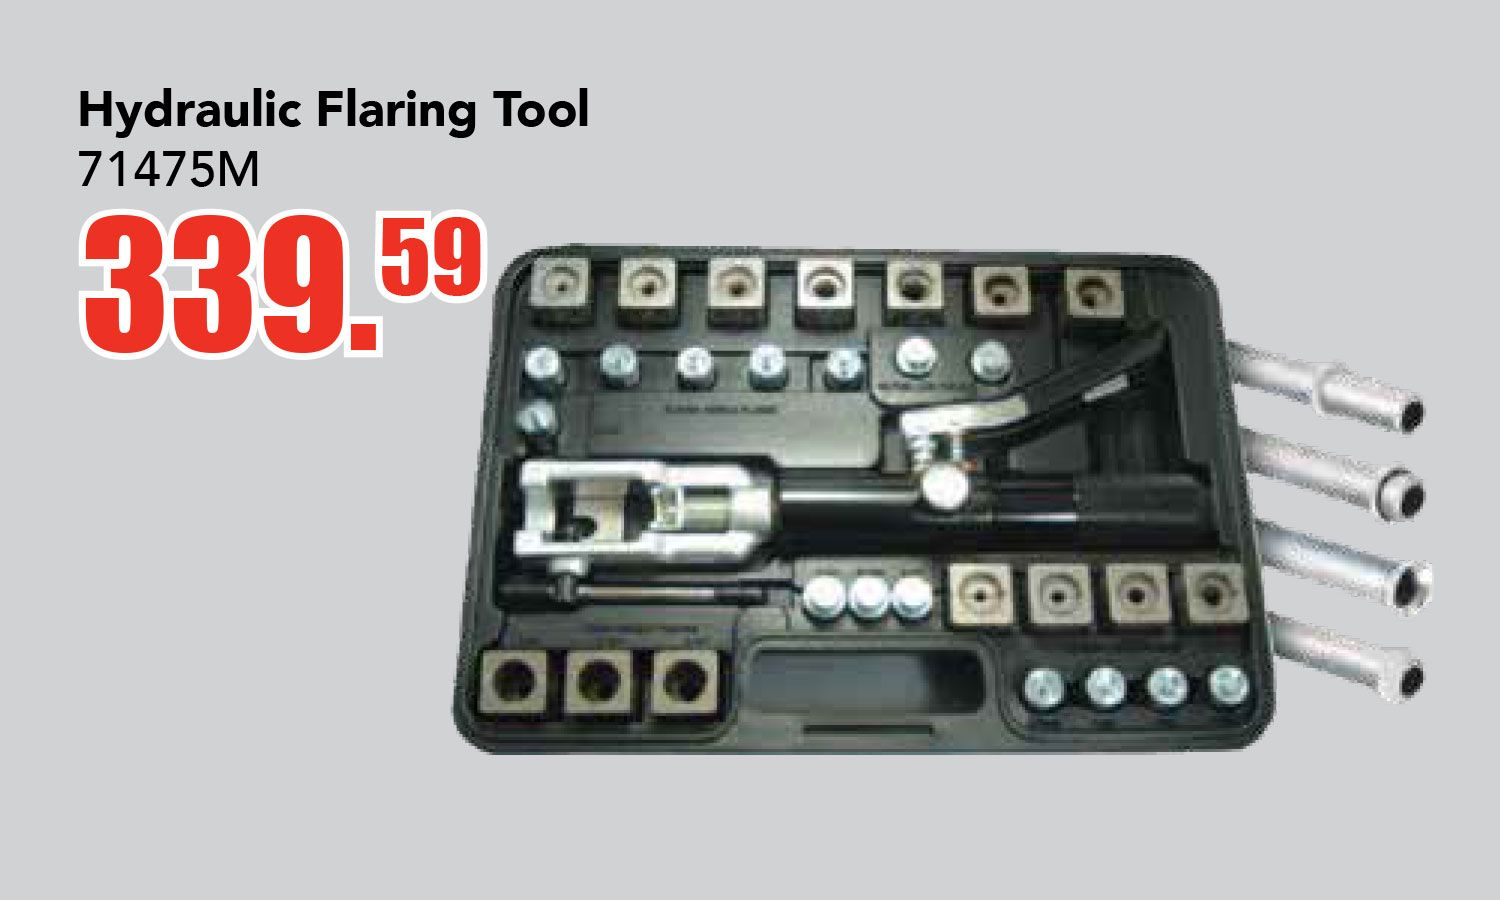 Get A Hydraulic Flaring Tool For Only 339 59 Ea This Sale Runs Until March 31 2018 Features Production Quali Business Pins Discount Auto Parts Hydraulic